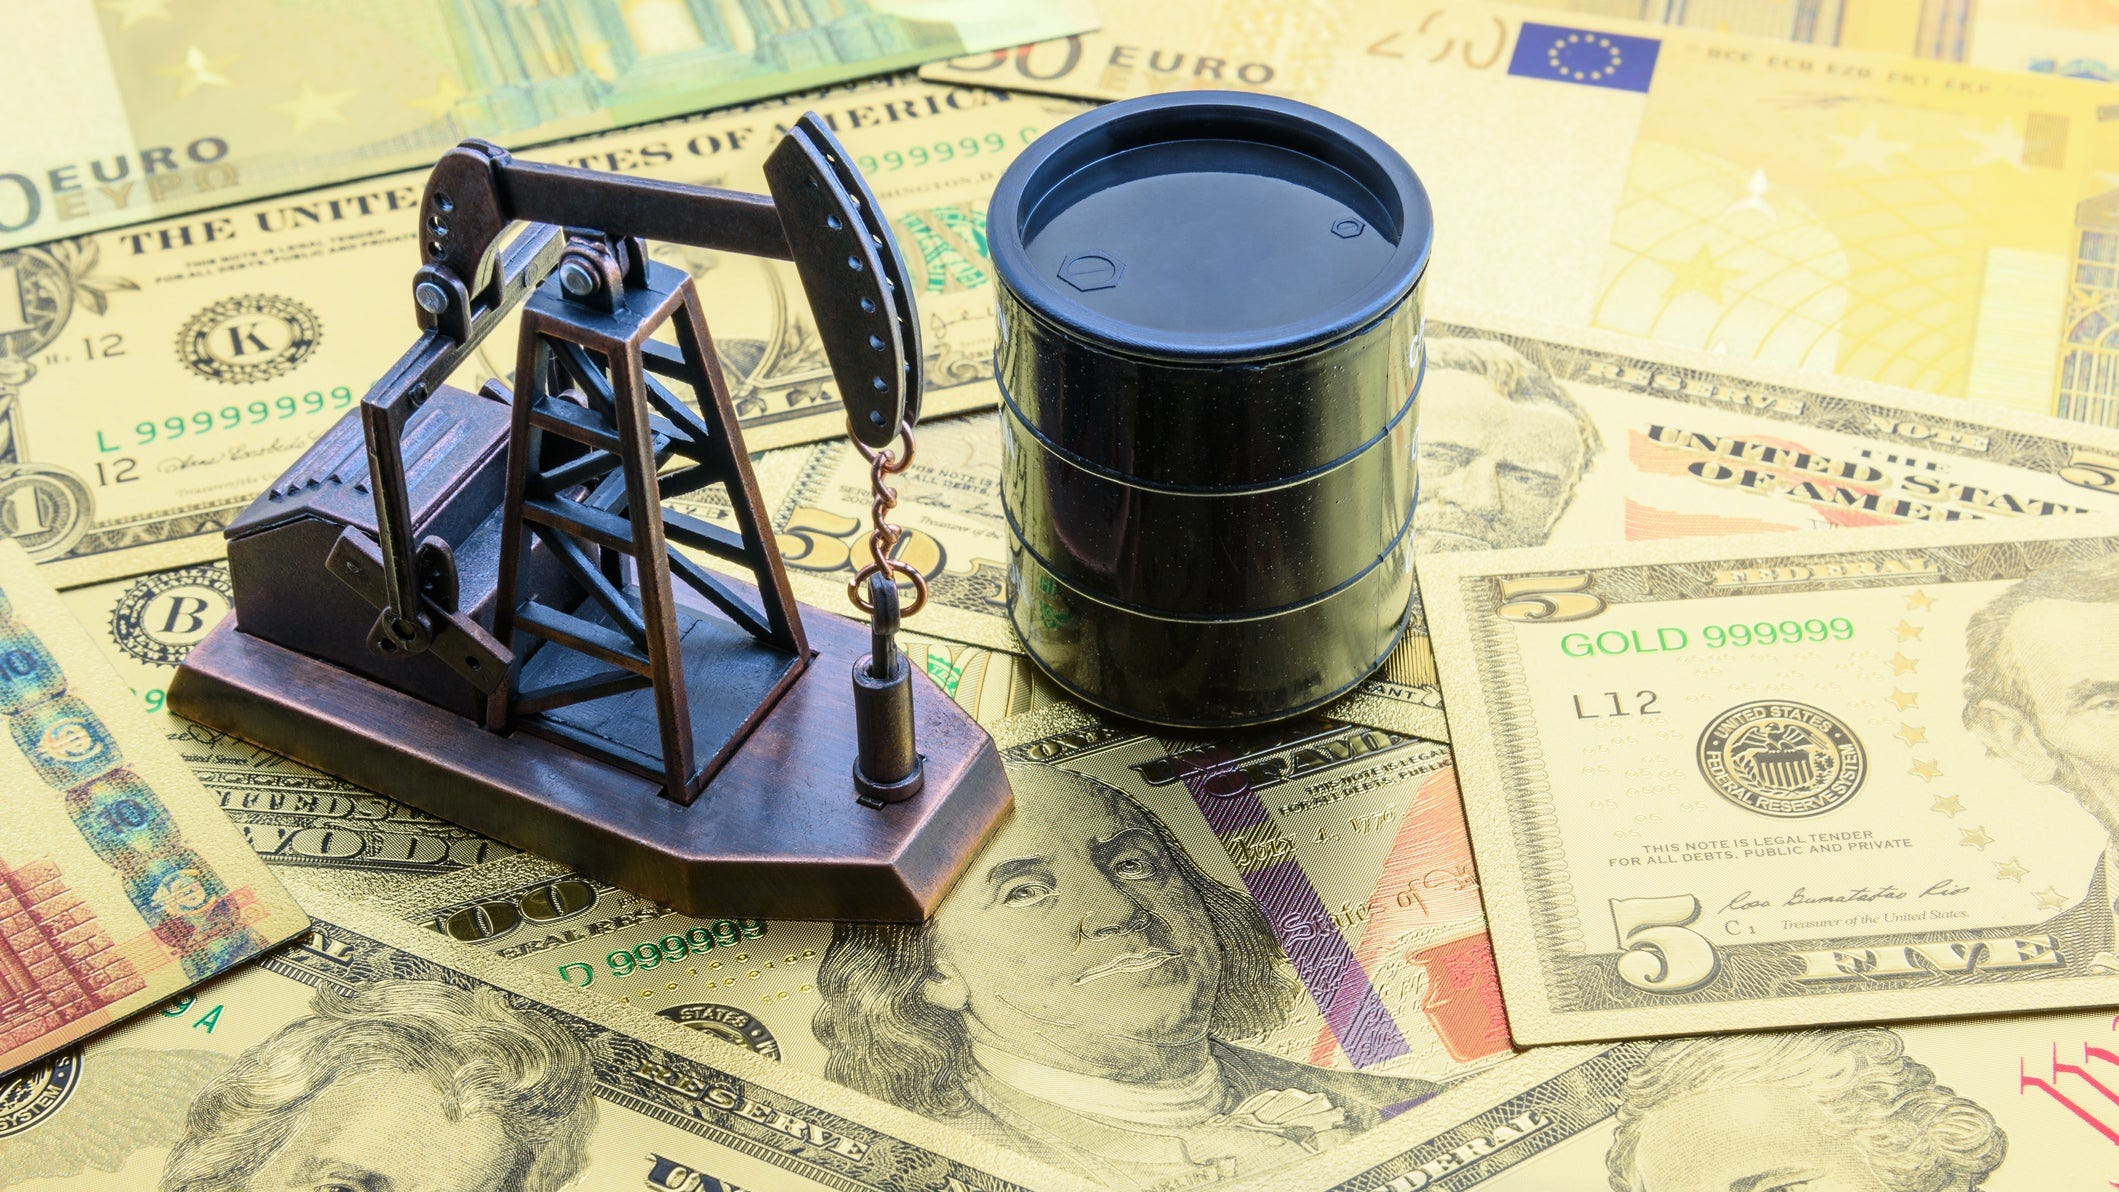 currentargus.com - Adrian Hedden, Carlsbad Current-Argus - Devon Energy merges with WPX Energy in $12 billion deal focused on Permian Basin oil